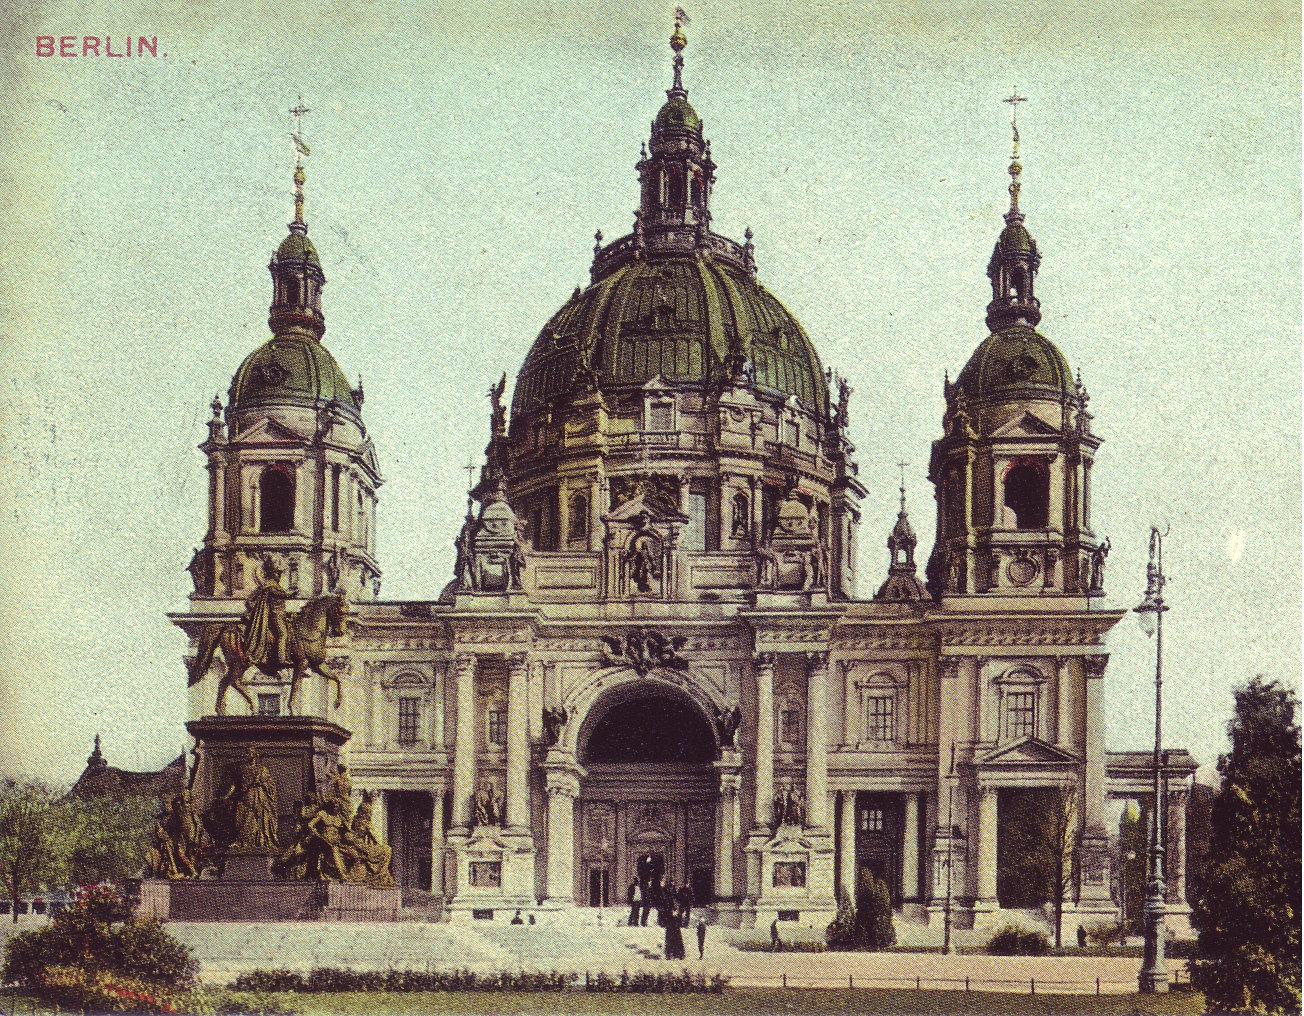 View of Berliner Dom in Berlin, around 1900.